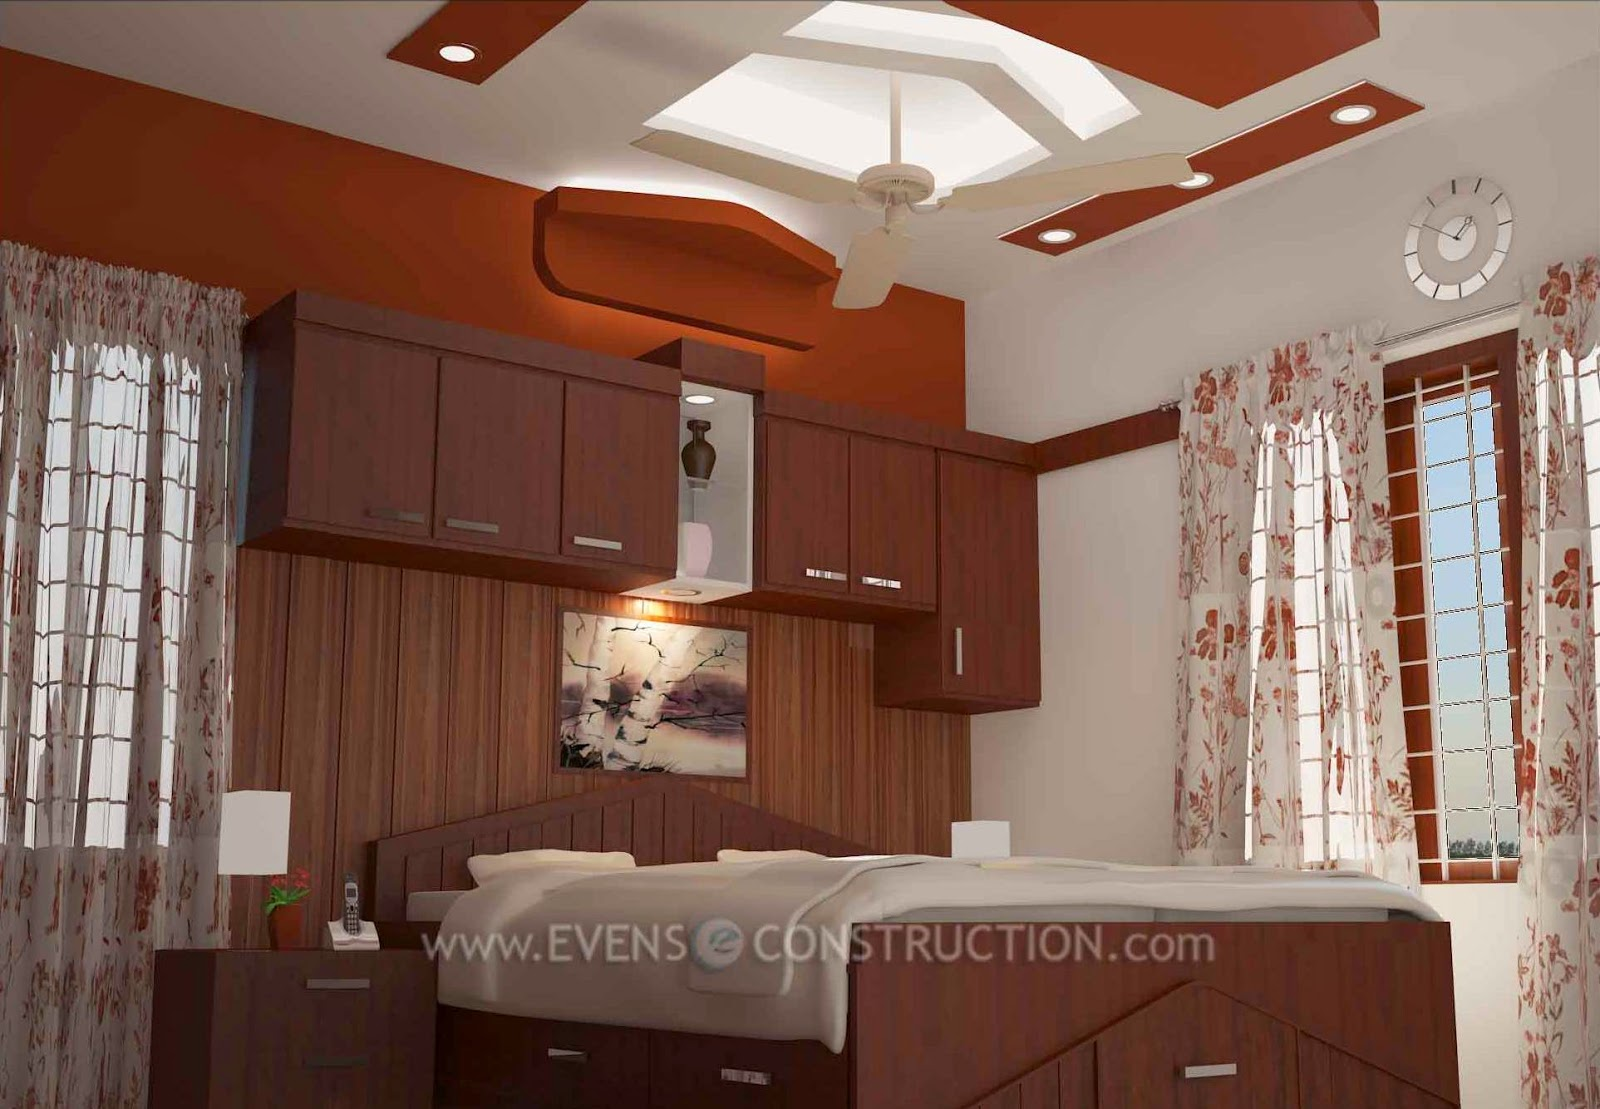 Evens construction pvt ltd may 2014 for Interior designs pictures